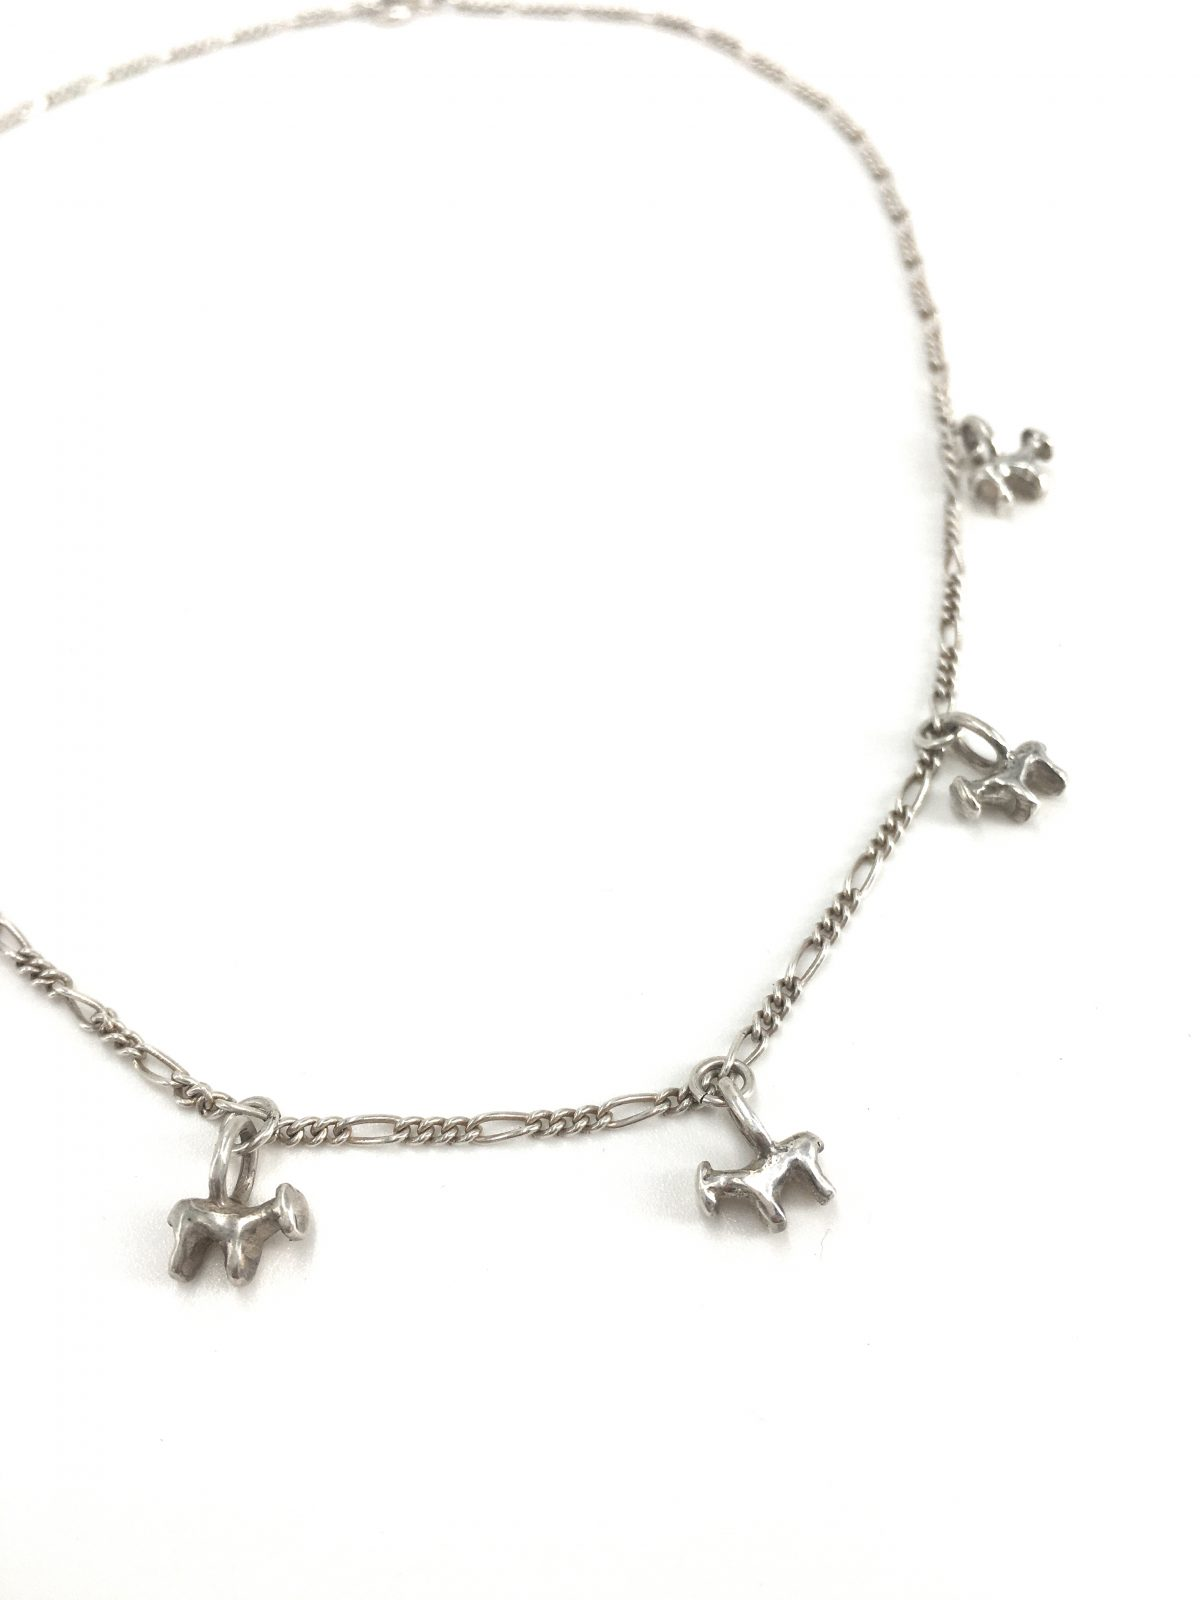 Carved animal charm necklace